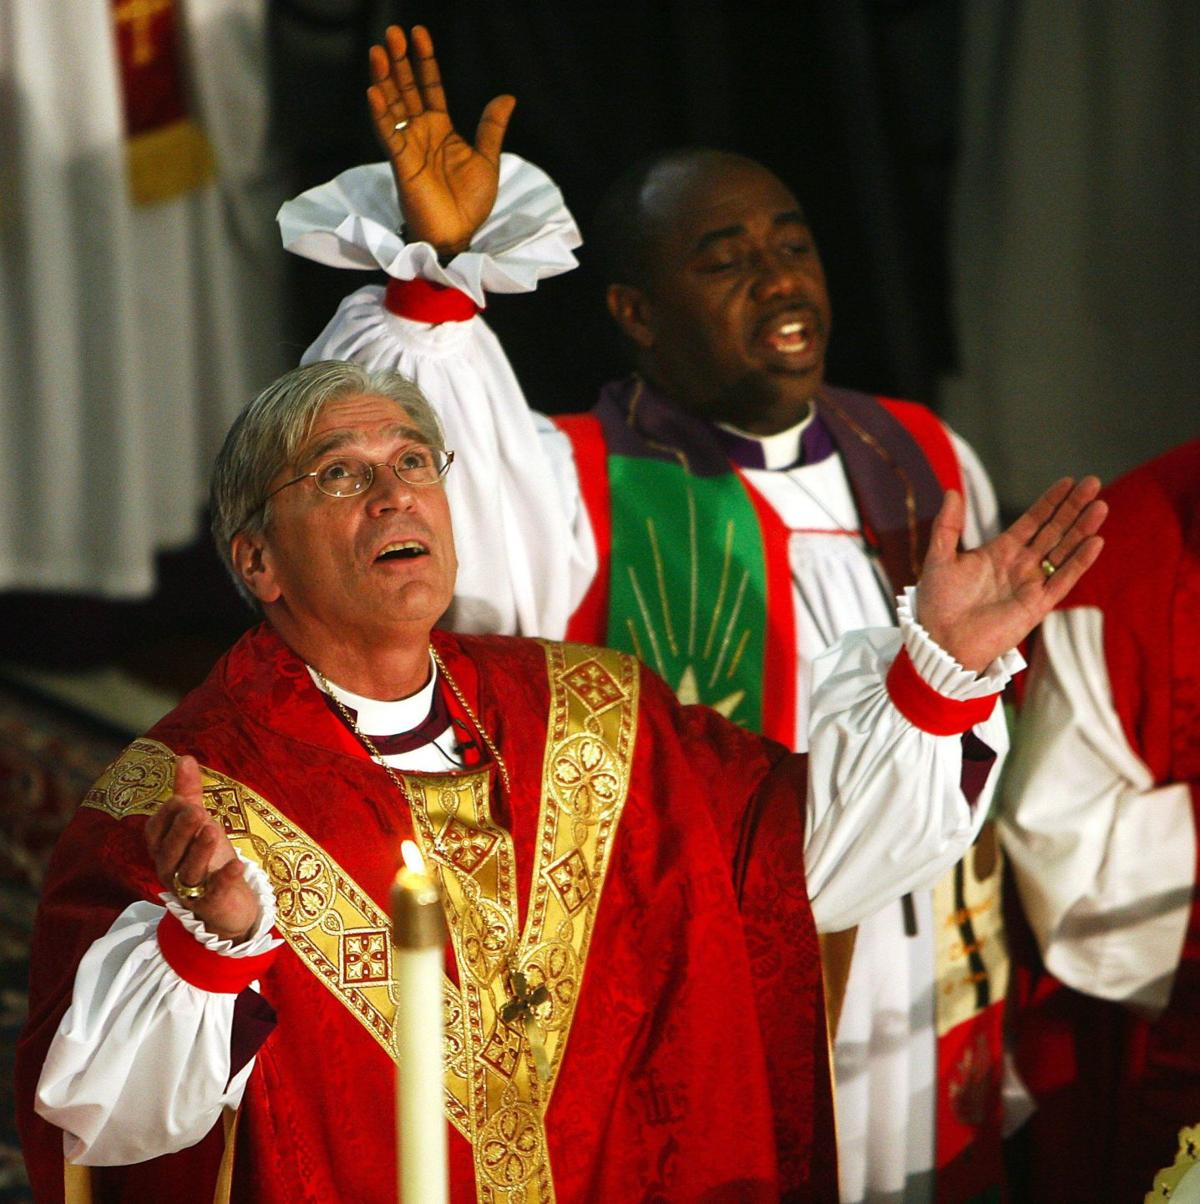 Two views of Episcopal riftDiocese has long history of moving away from churchNational church faulted for 'diverse like me' mind-set